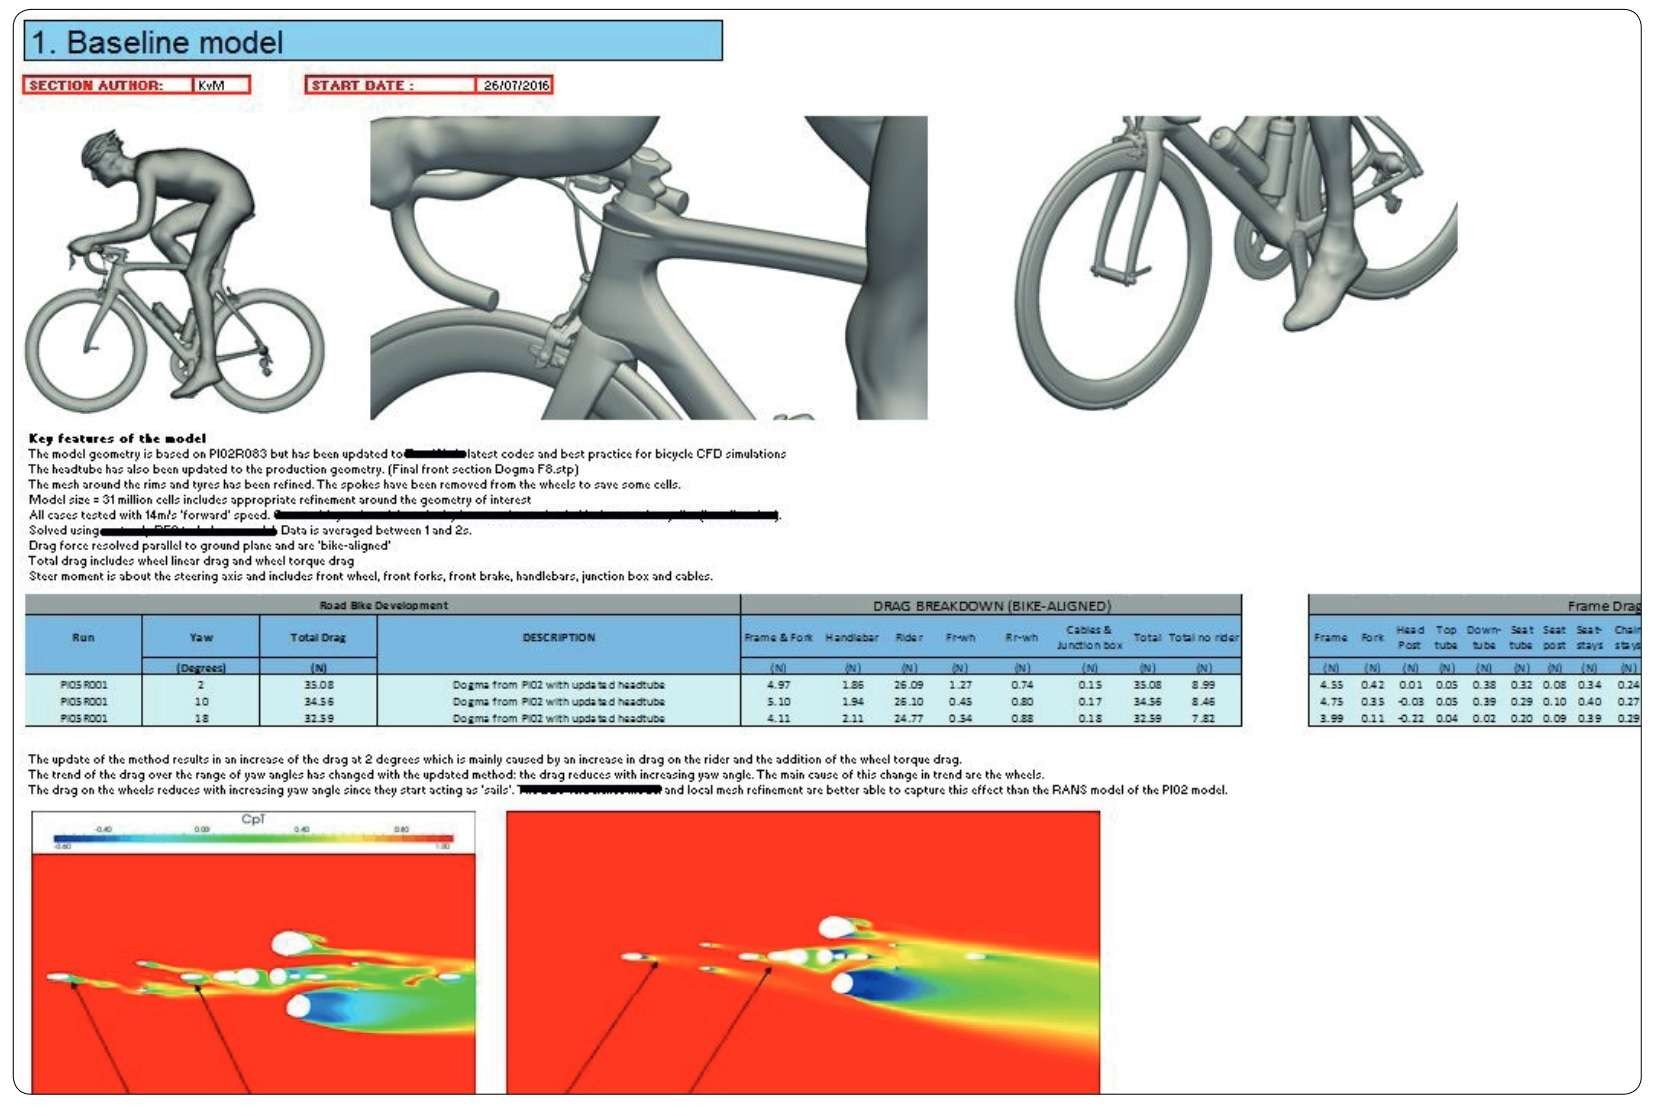 Finite Element Analysis data from development of the Pinarello Dogma F10